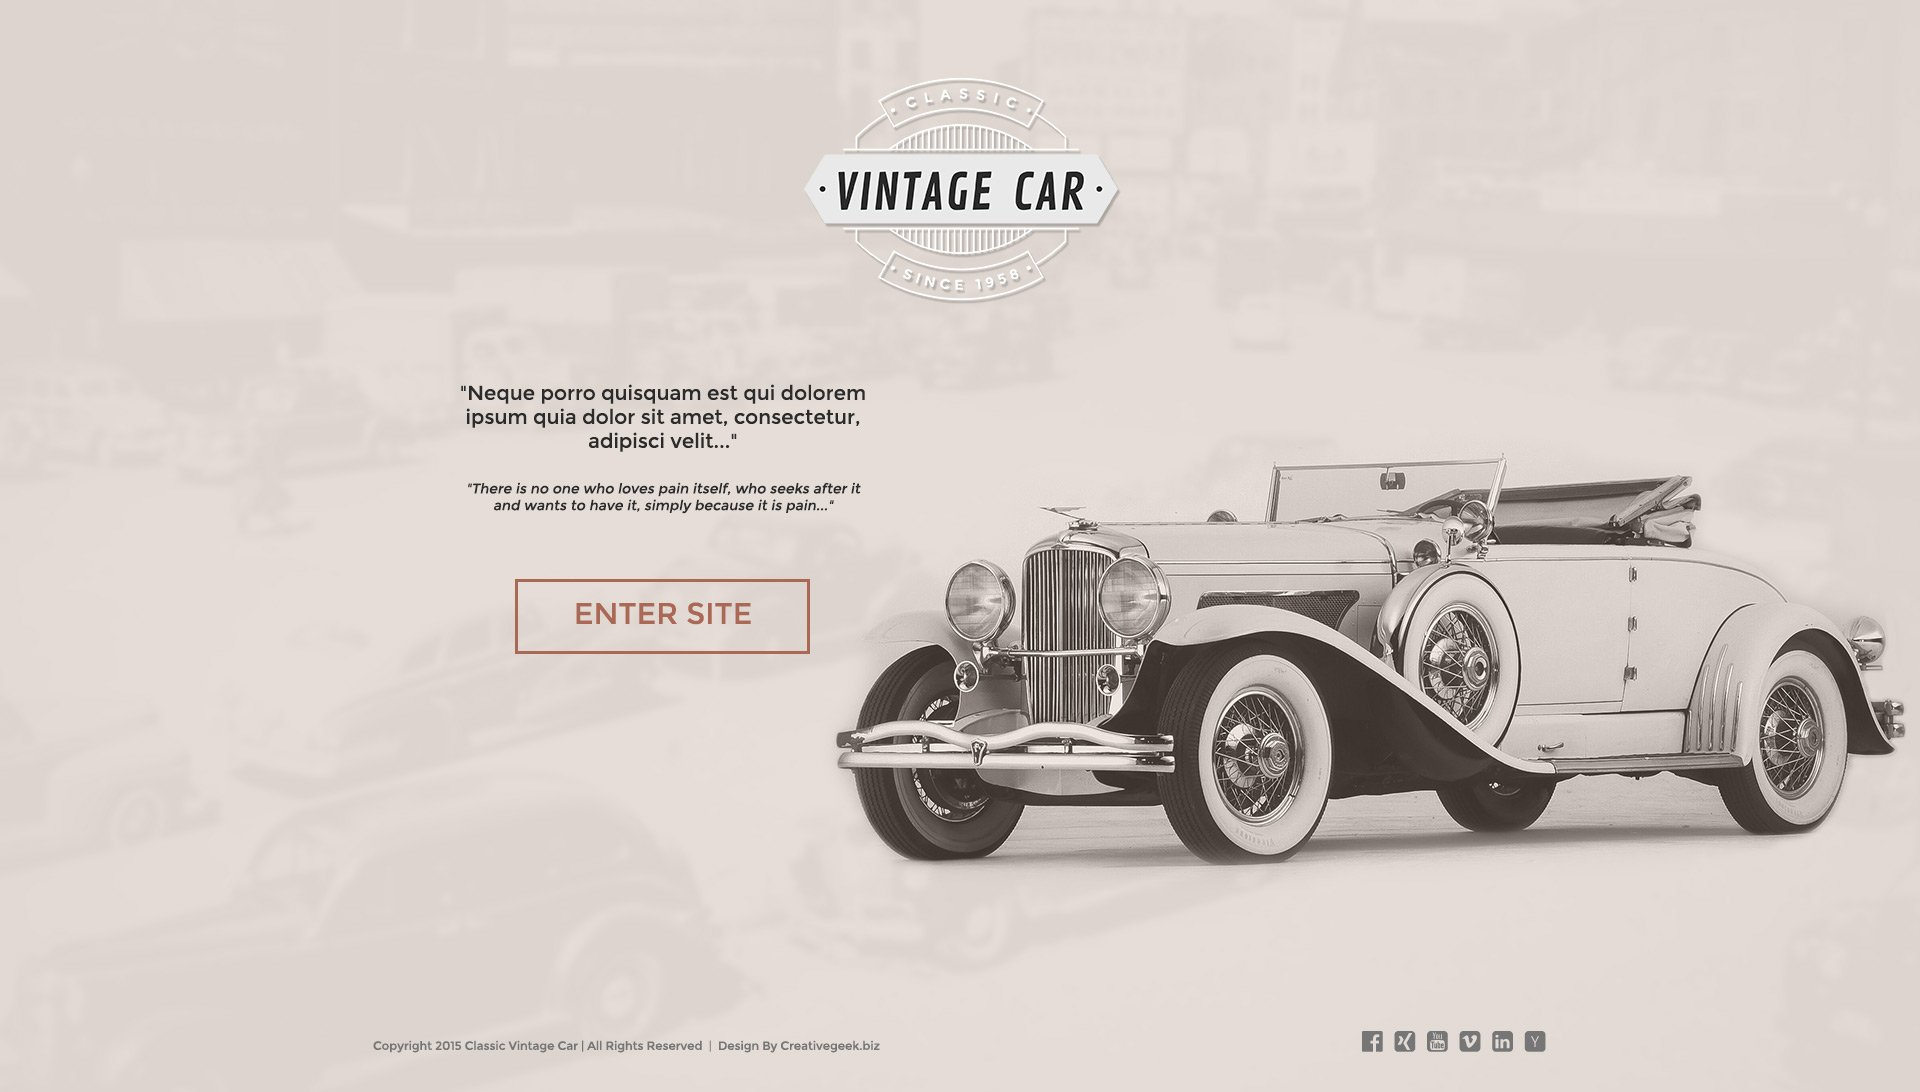 Free Vintage Car template - Creativegeek